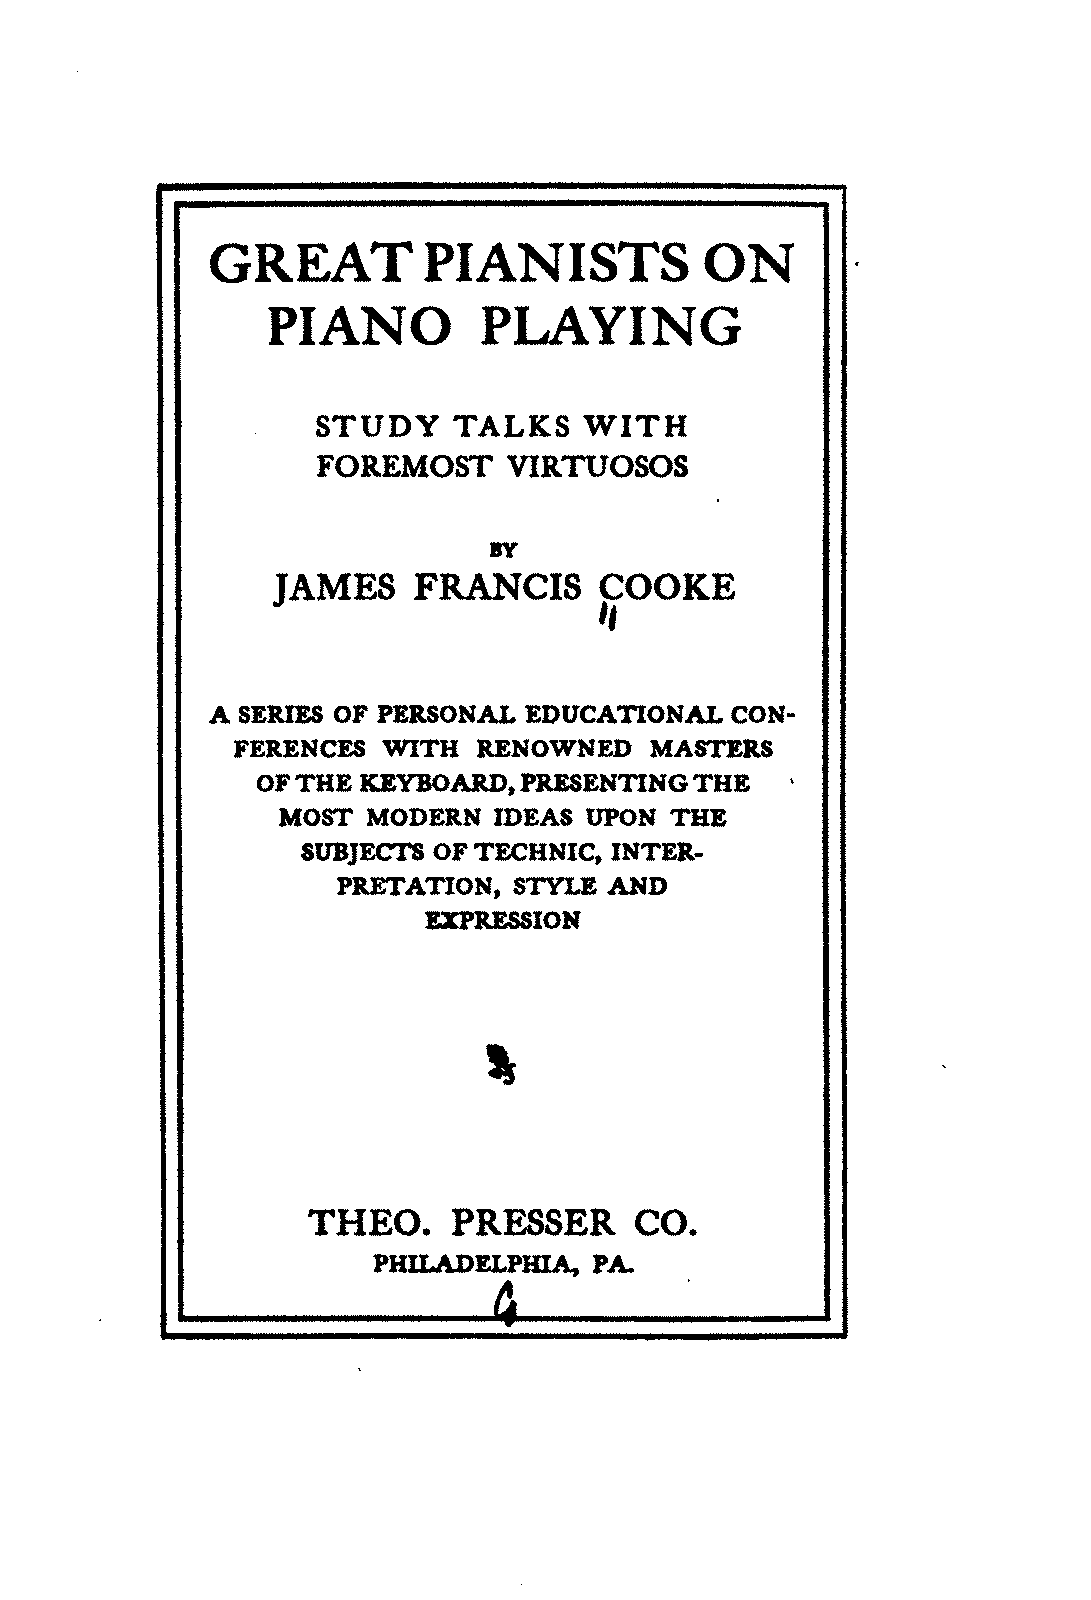 PMLP144684-Cooke-GreatPianistsOnPianoPlaying.pdf